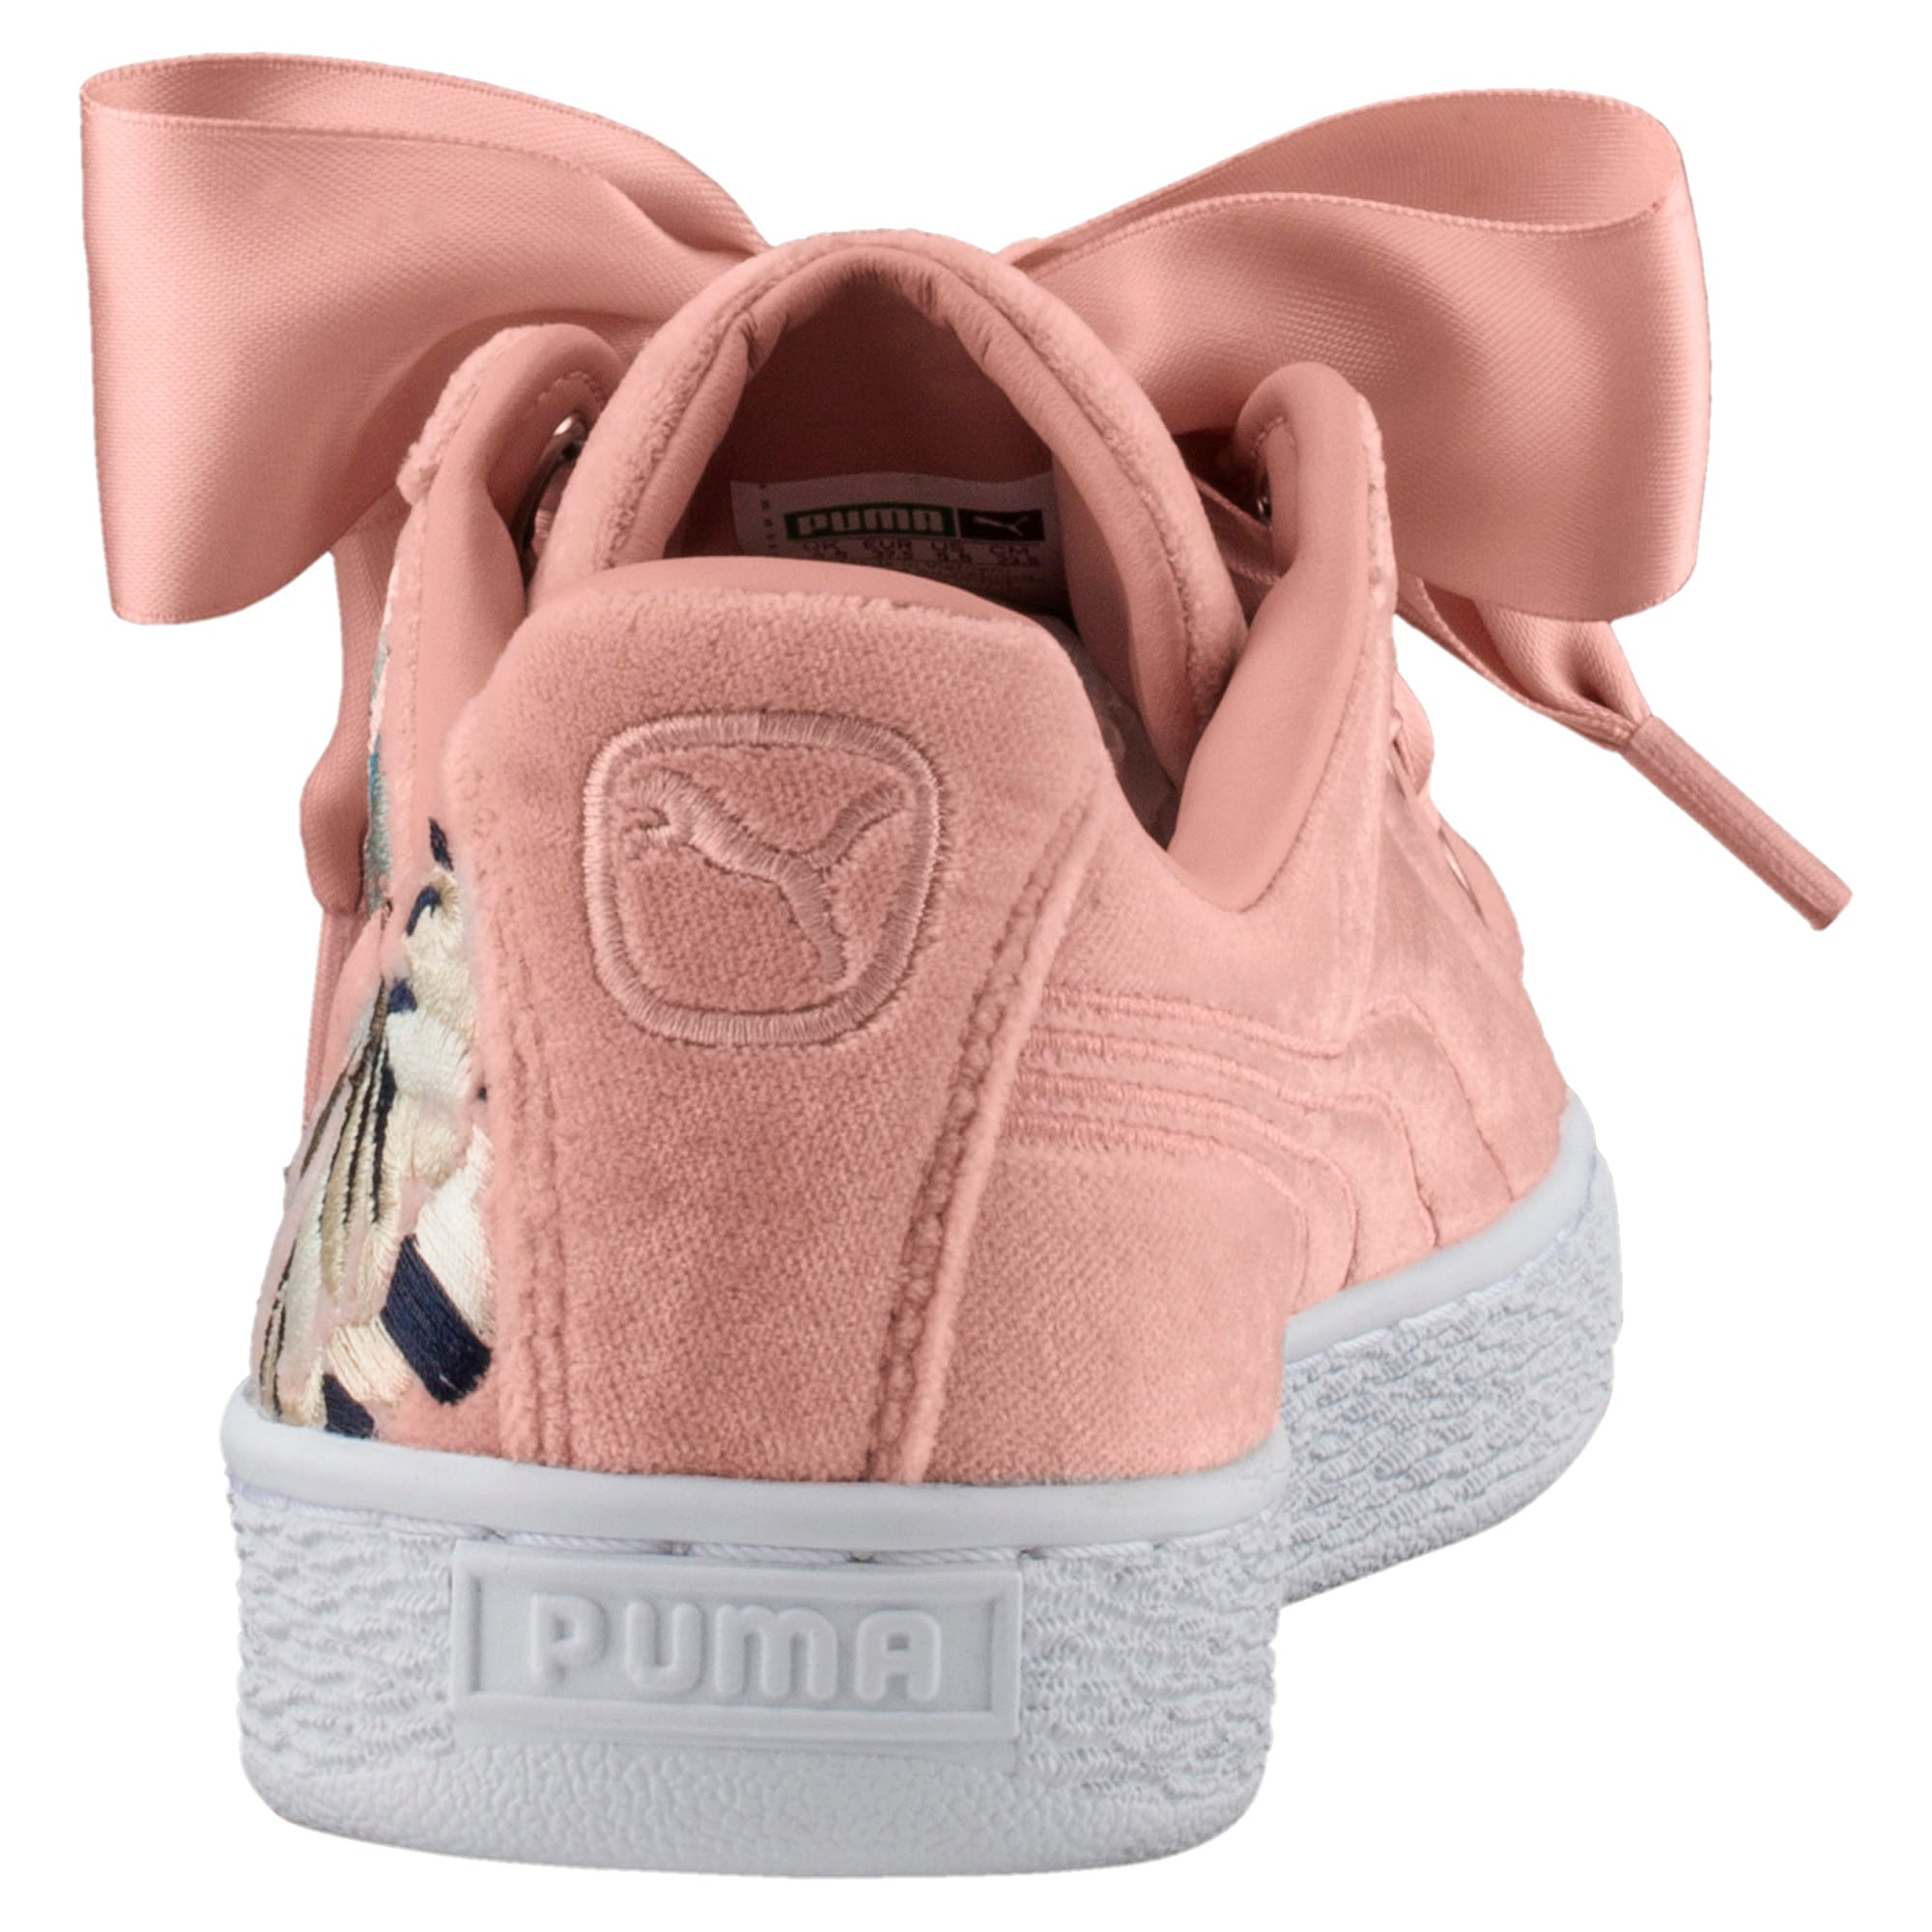 Thumbnail 4 of Basket Heart Hyper Embroidery Women's Trainers, Peach Beige, medium-IND